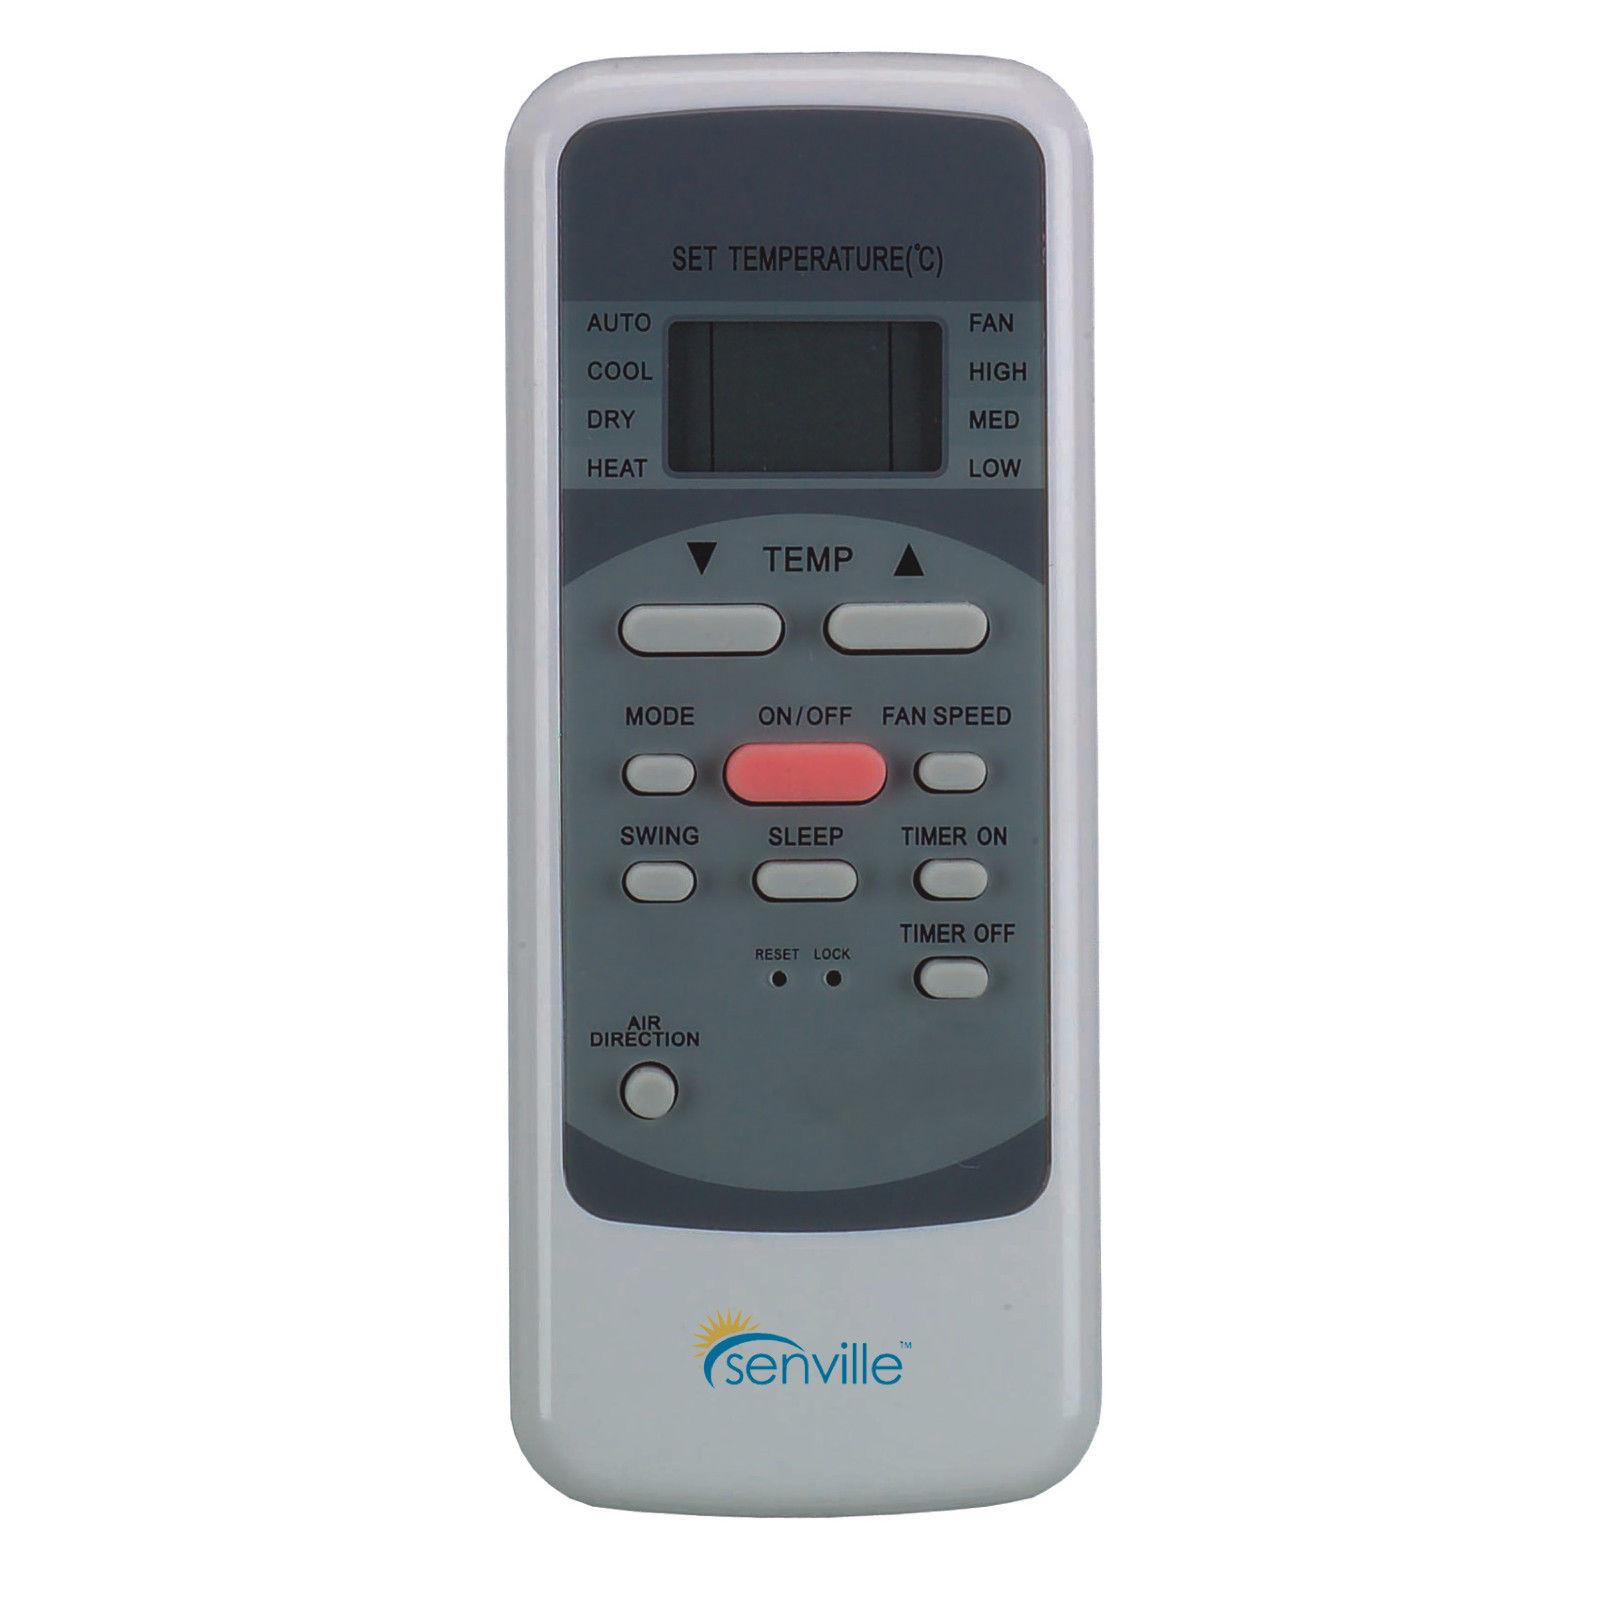 control programmable remote control for accurate temperature control #933A38